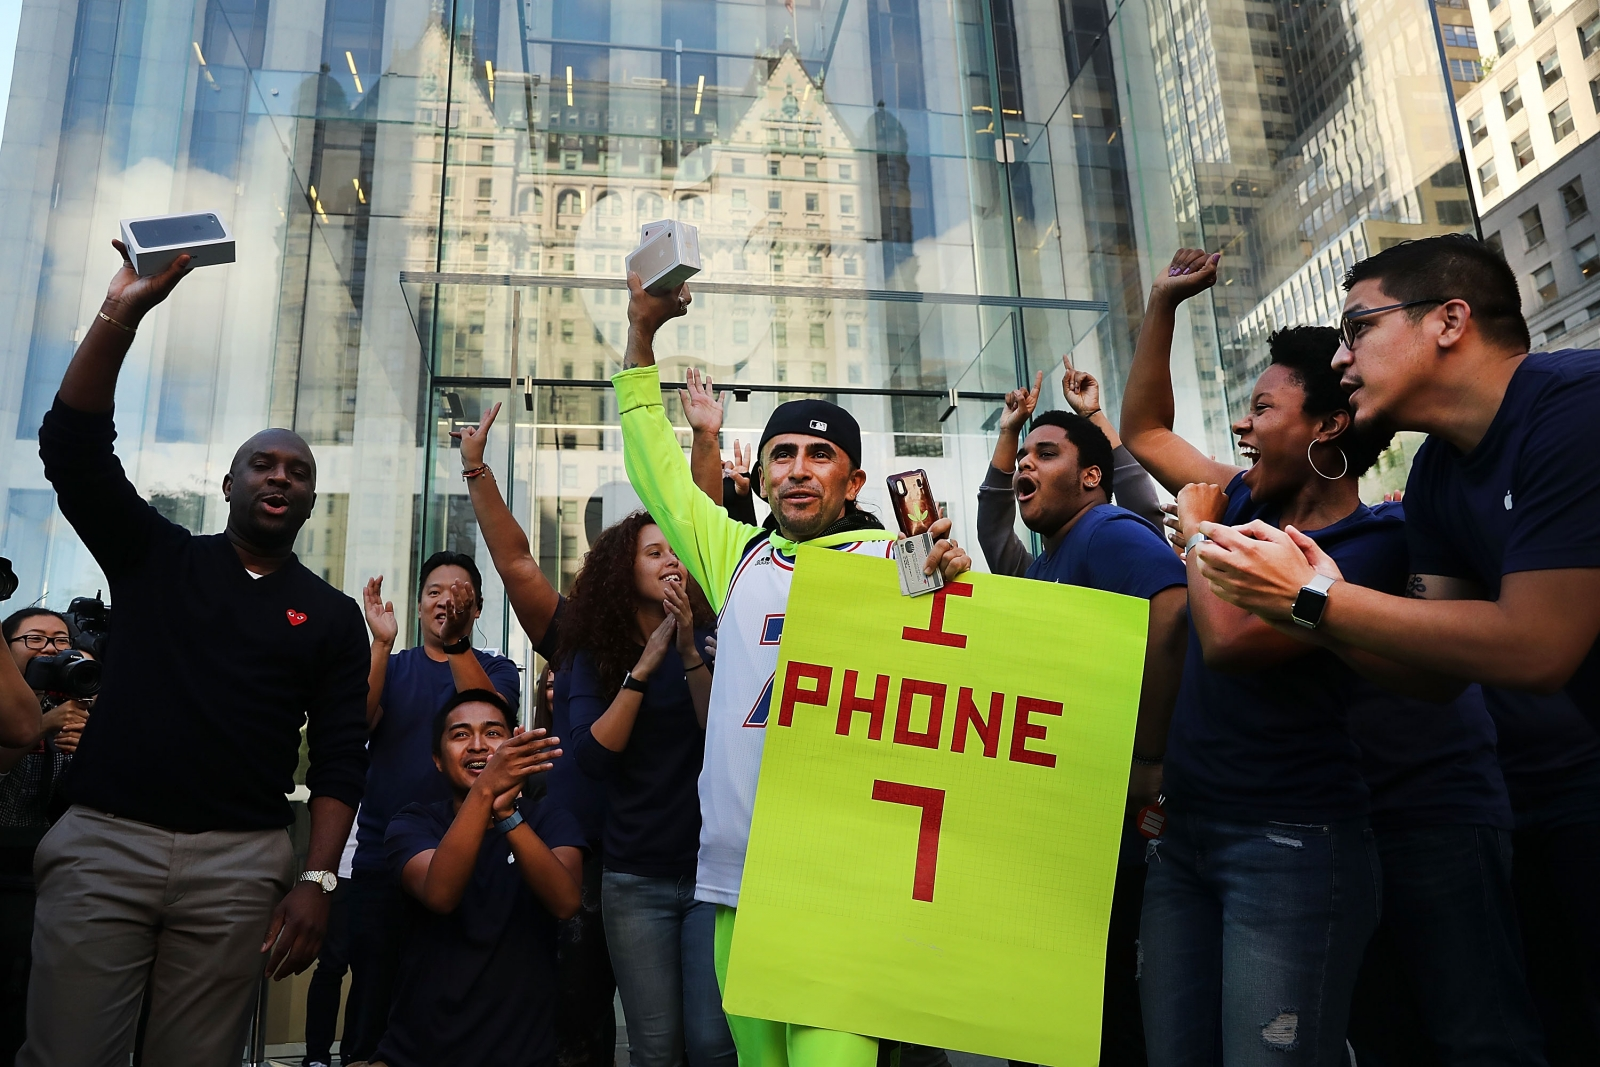 iPhone 7 sales by end of 2016